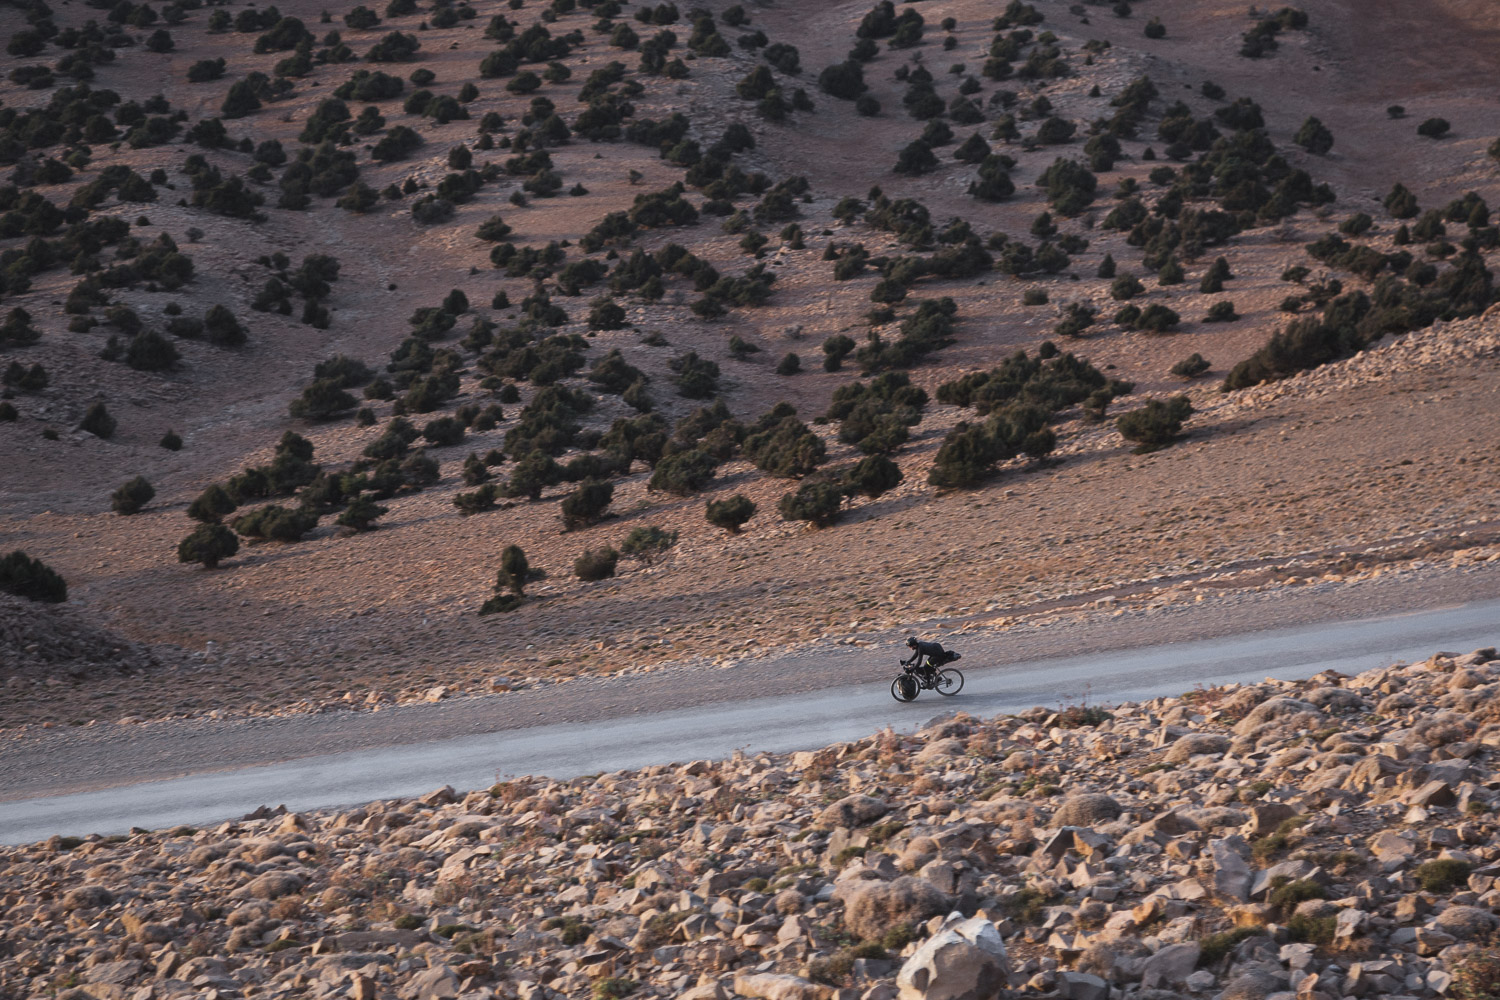 8bar bikes adventures morocco gravel 20151214 0116 bearbeitet - 8bar Adventures - Morocco - High Atlas - Part 2/2